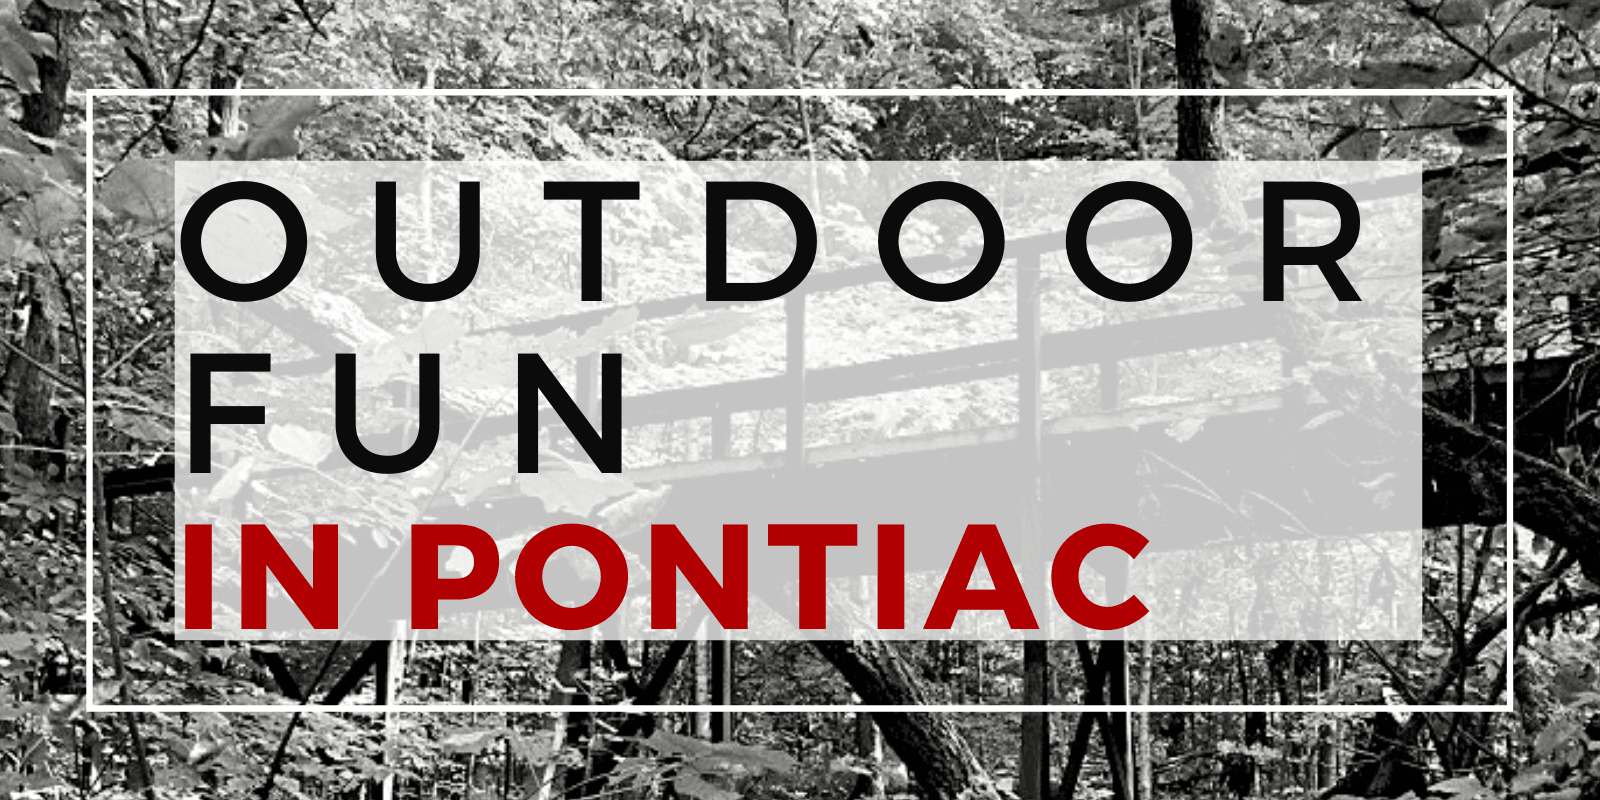 Image of bridge in forest with the words Outdoor Fun in Pontiac superimposed